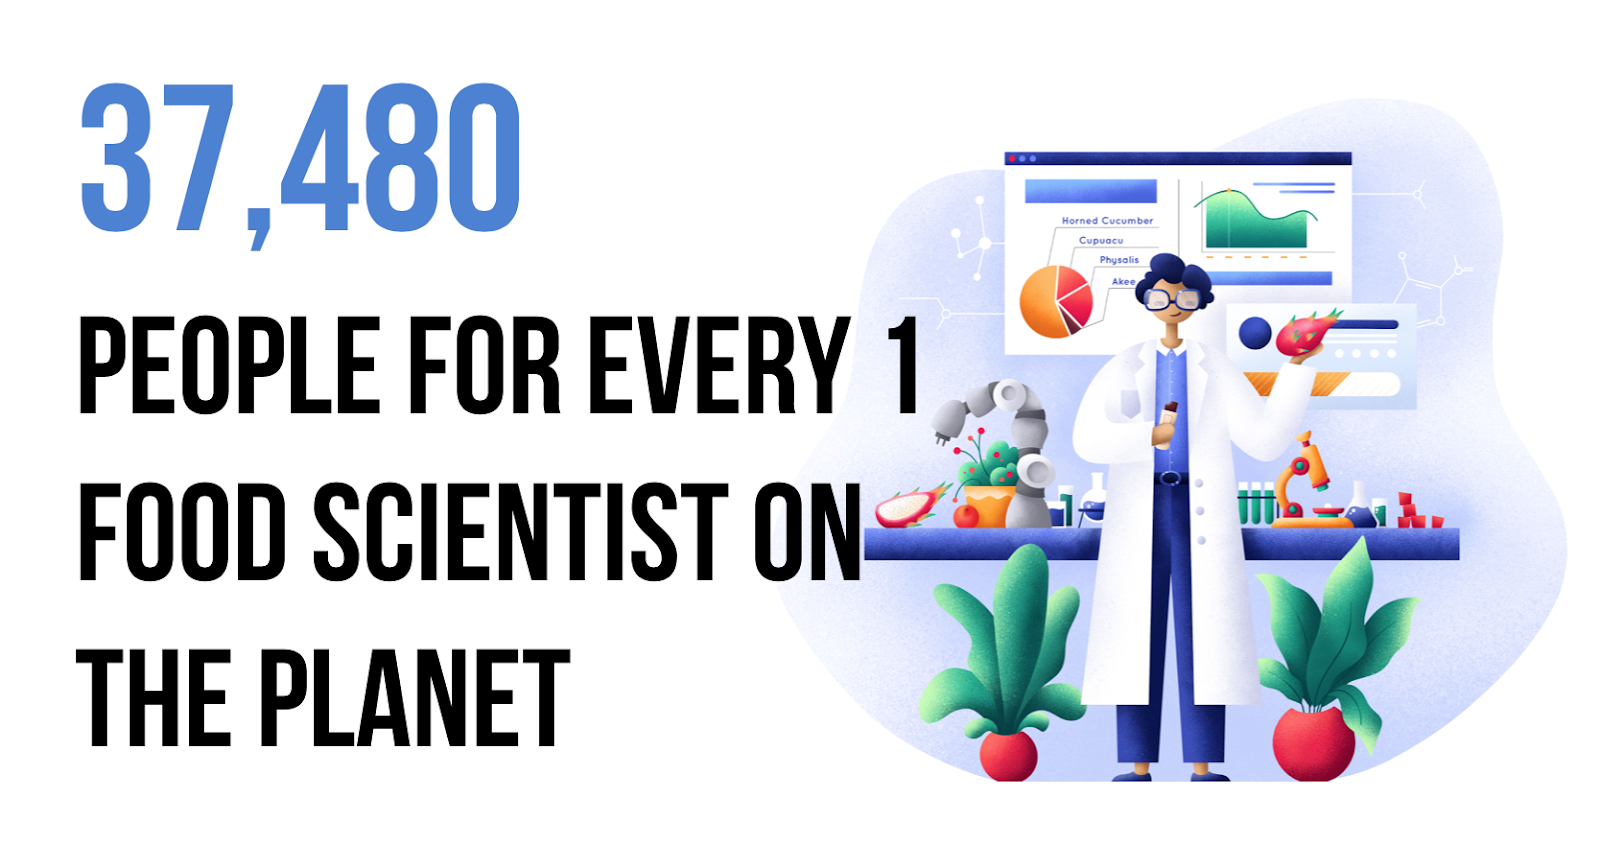 37,480 people for every 1 food scientist on the planet